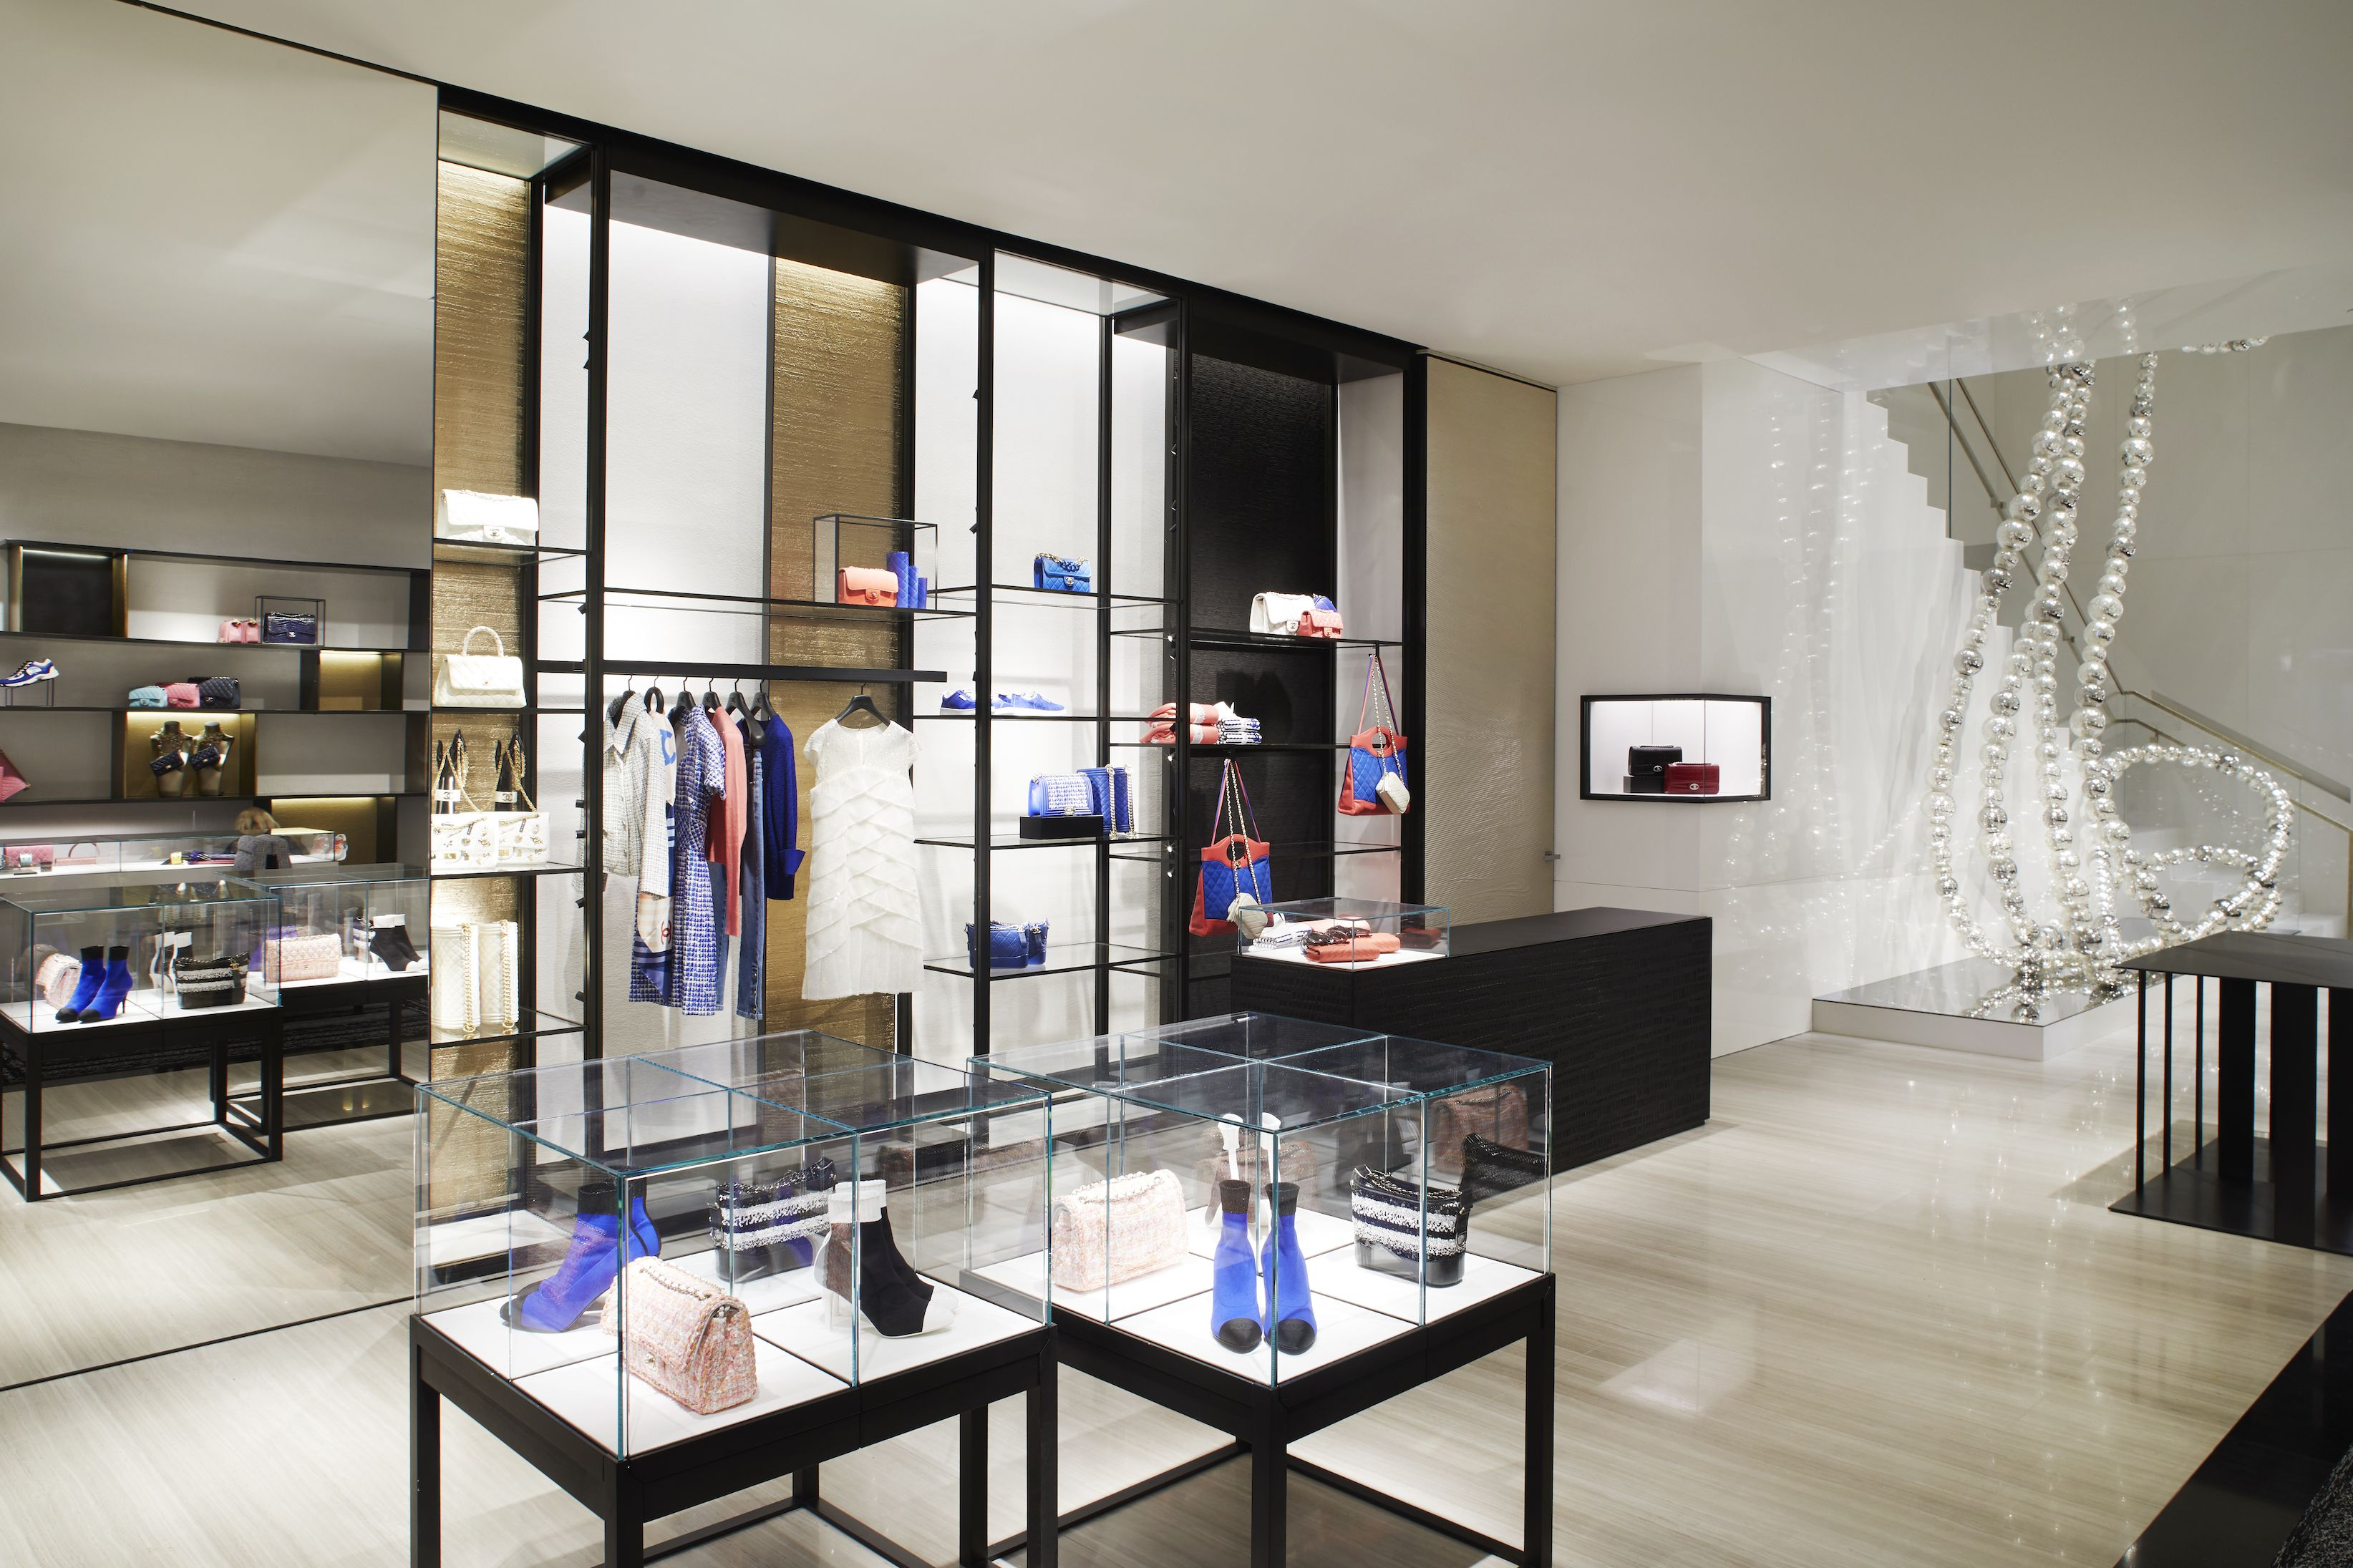 The boutique will house Chanel's ready-to-wear, handbag, shoe, costume jewelry, eyewear, watches & fine jewelry, and fragrance & beauty collections.